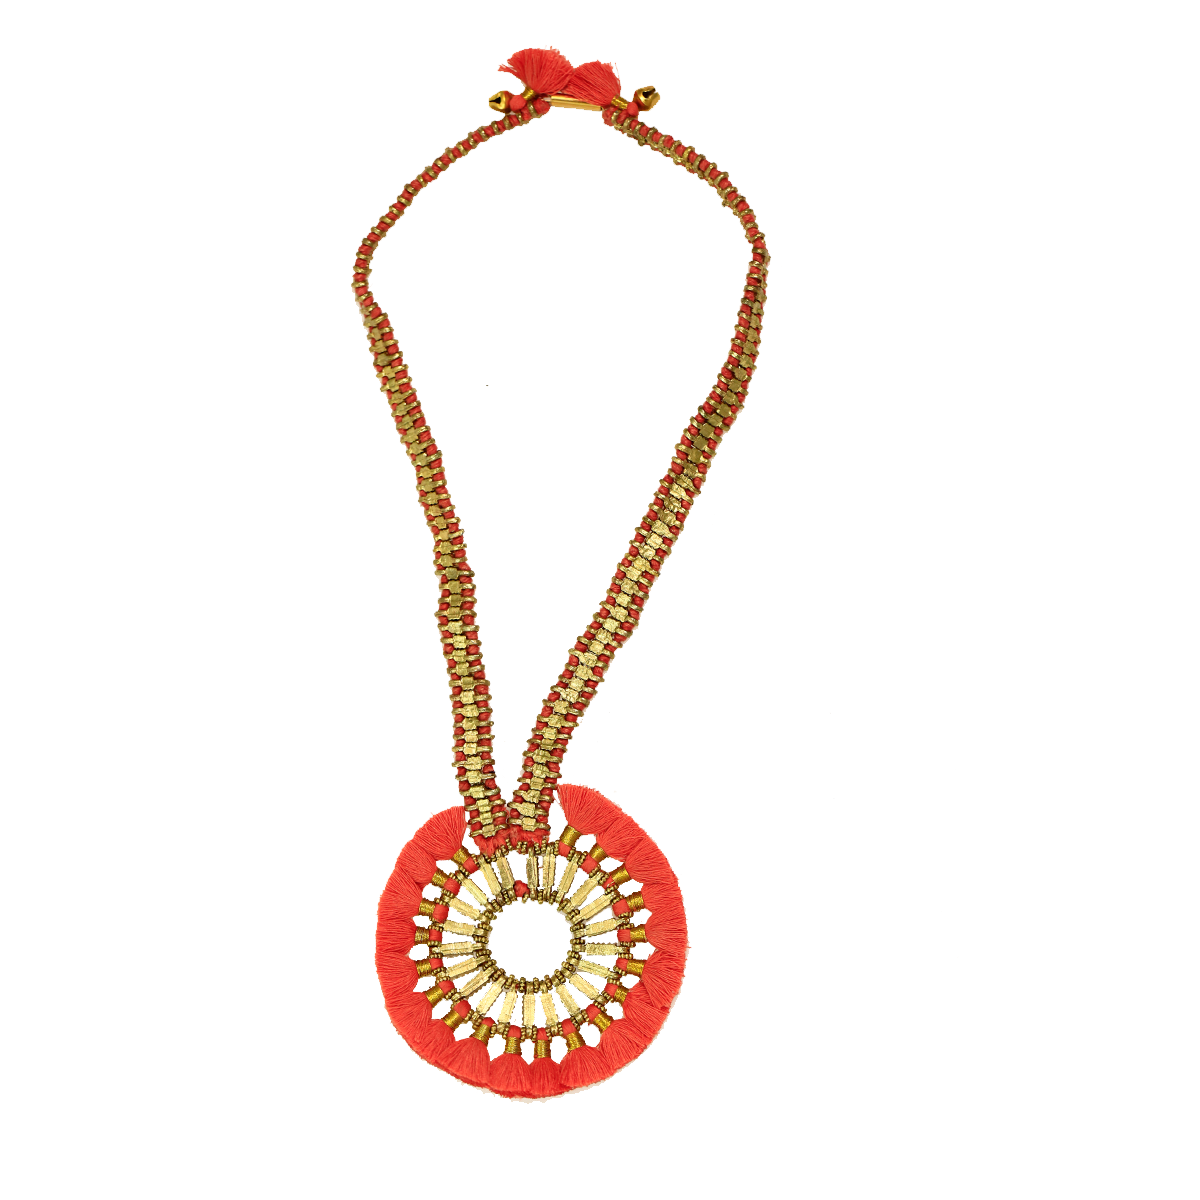 Bohemian Metal Tassel Necklace - Red